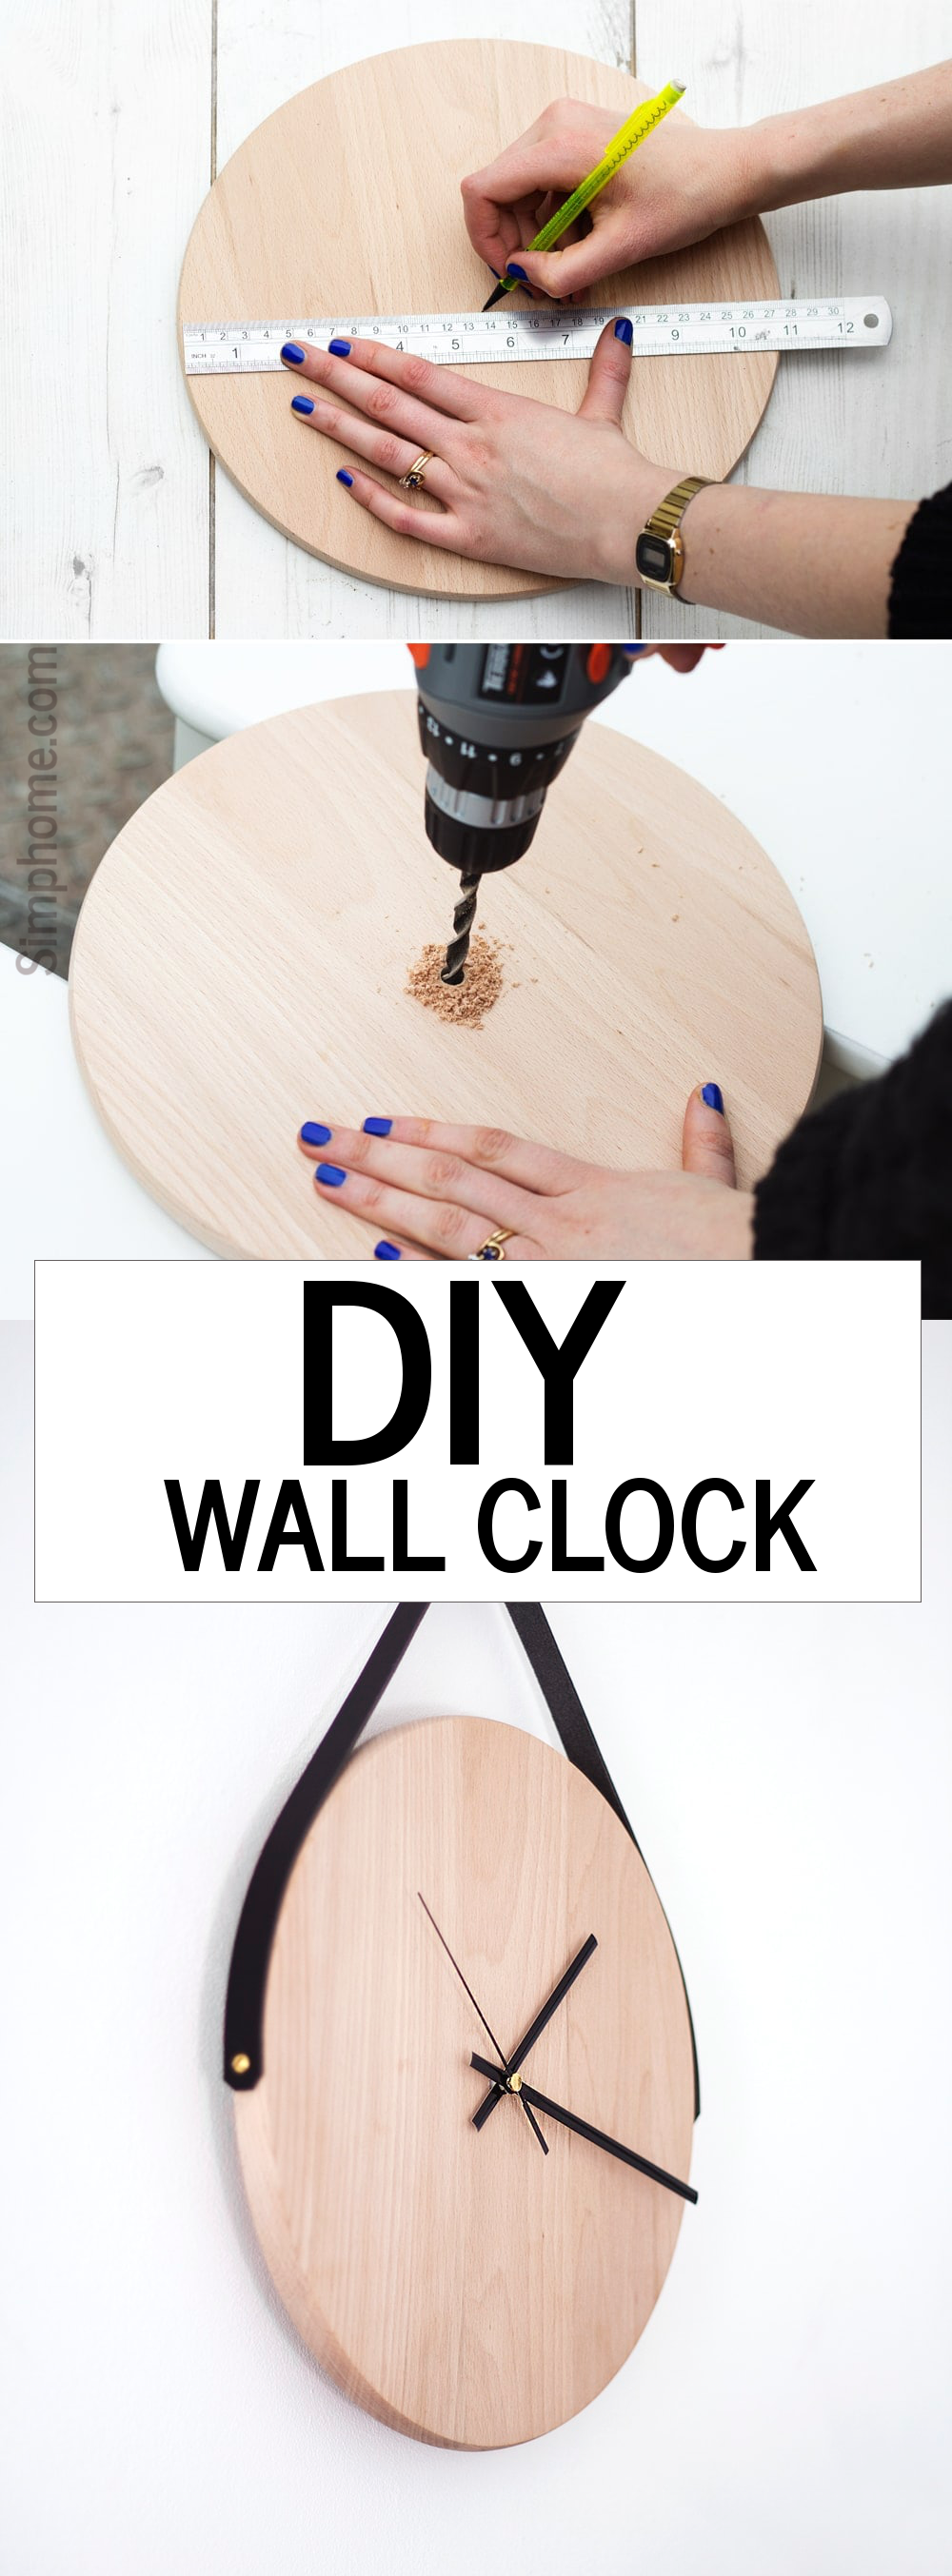 07 DIY Wall clock by the lovely drawer simphome com